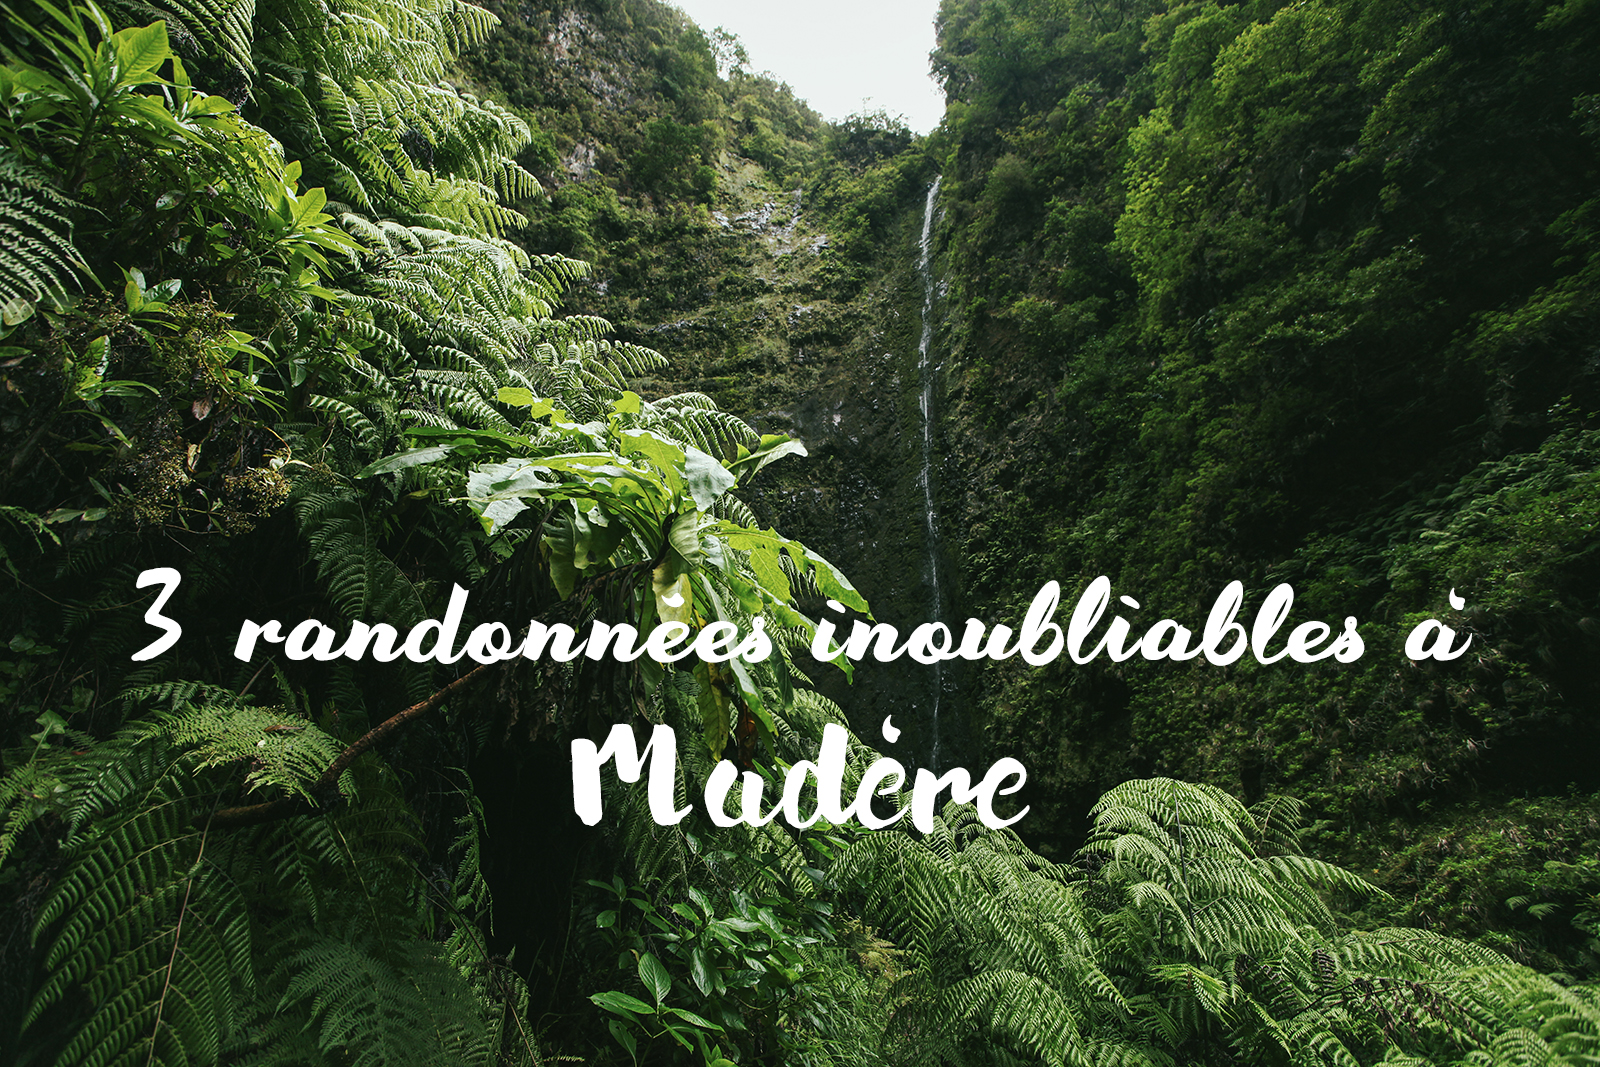 randonnees-madere-blog